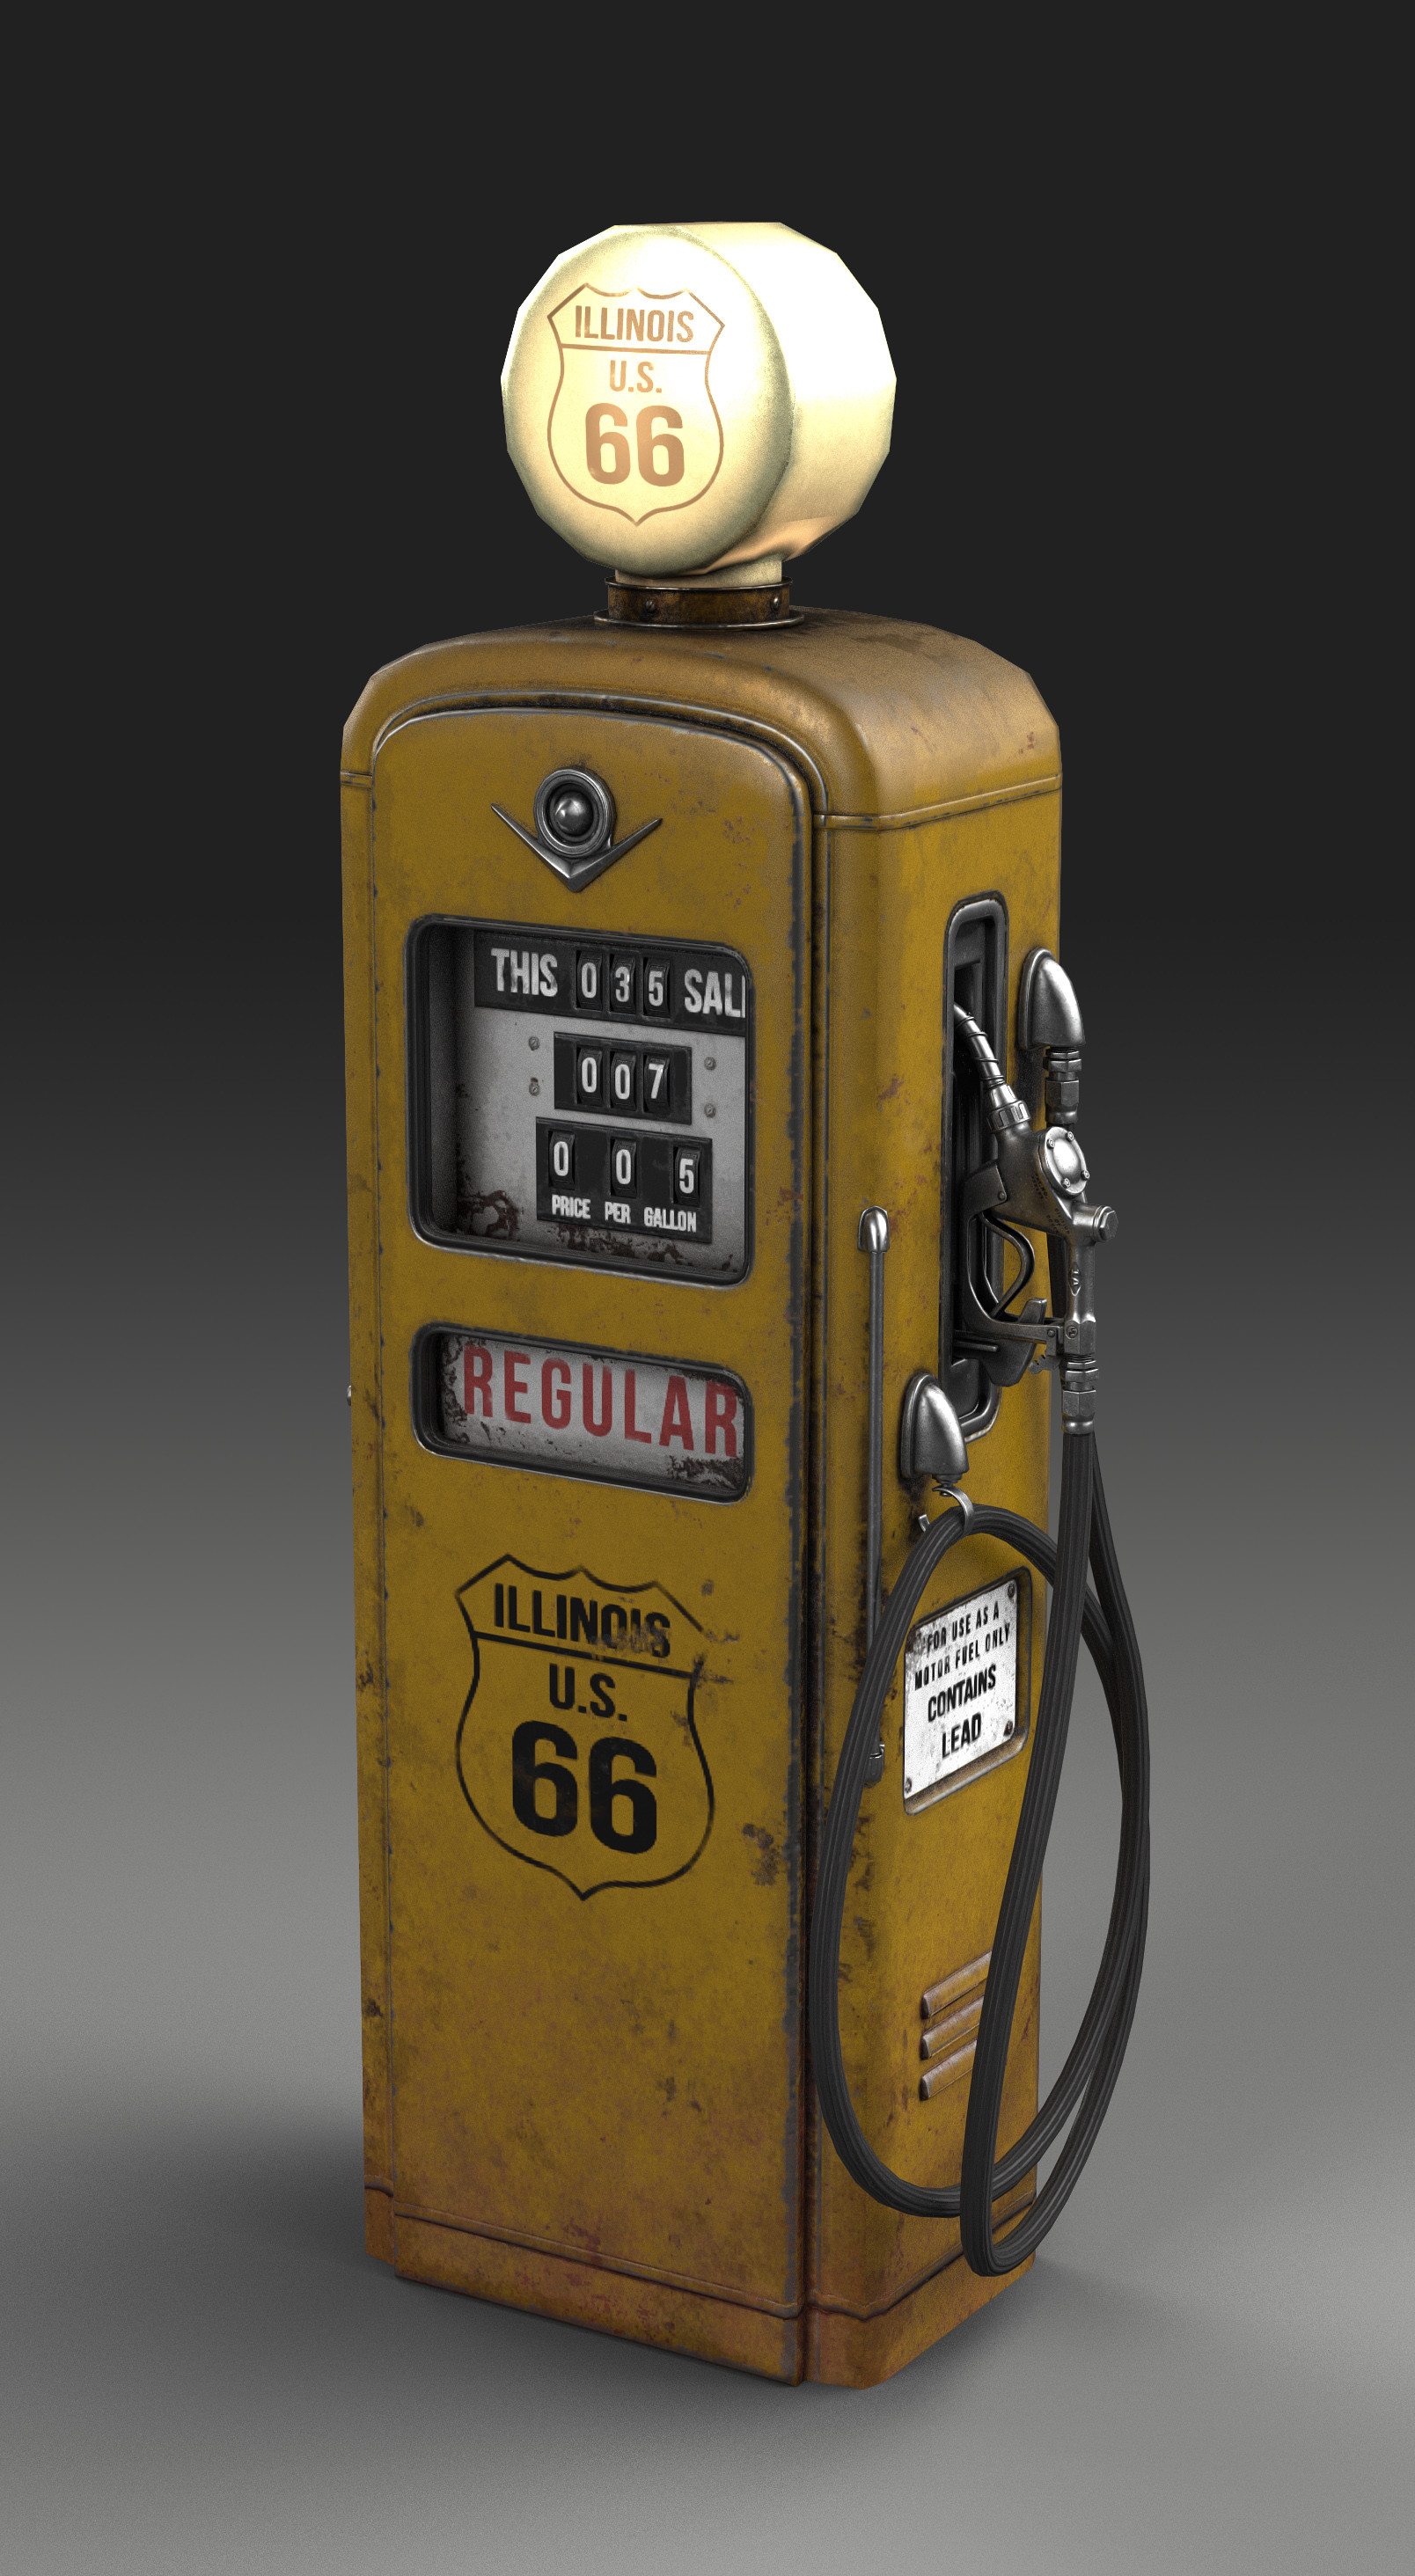 ArtStation - Old gas pump, Pavel Bogdanov